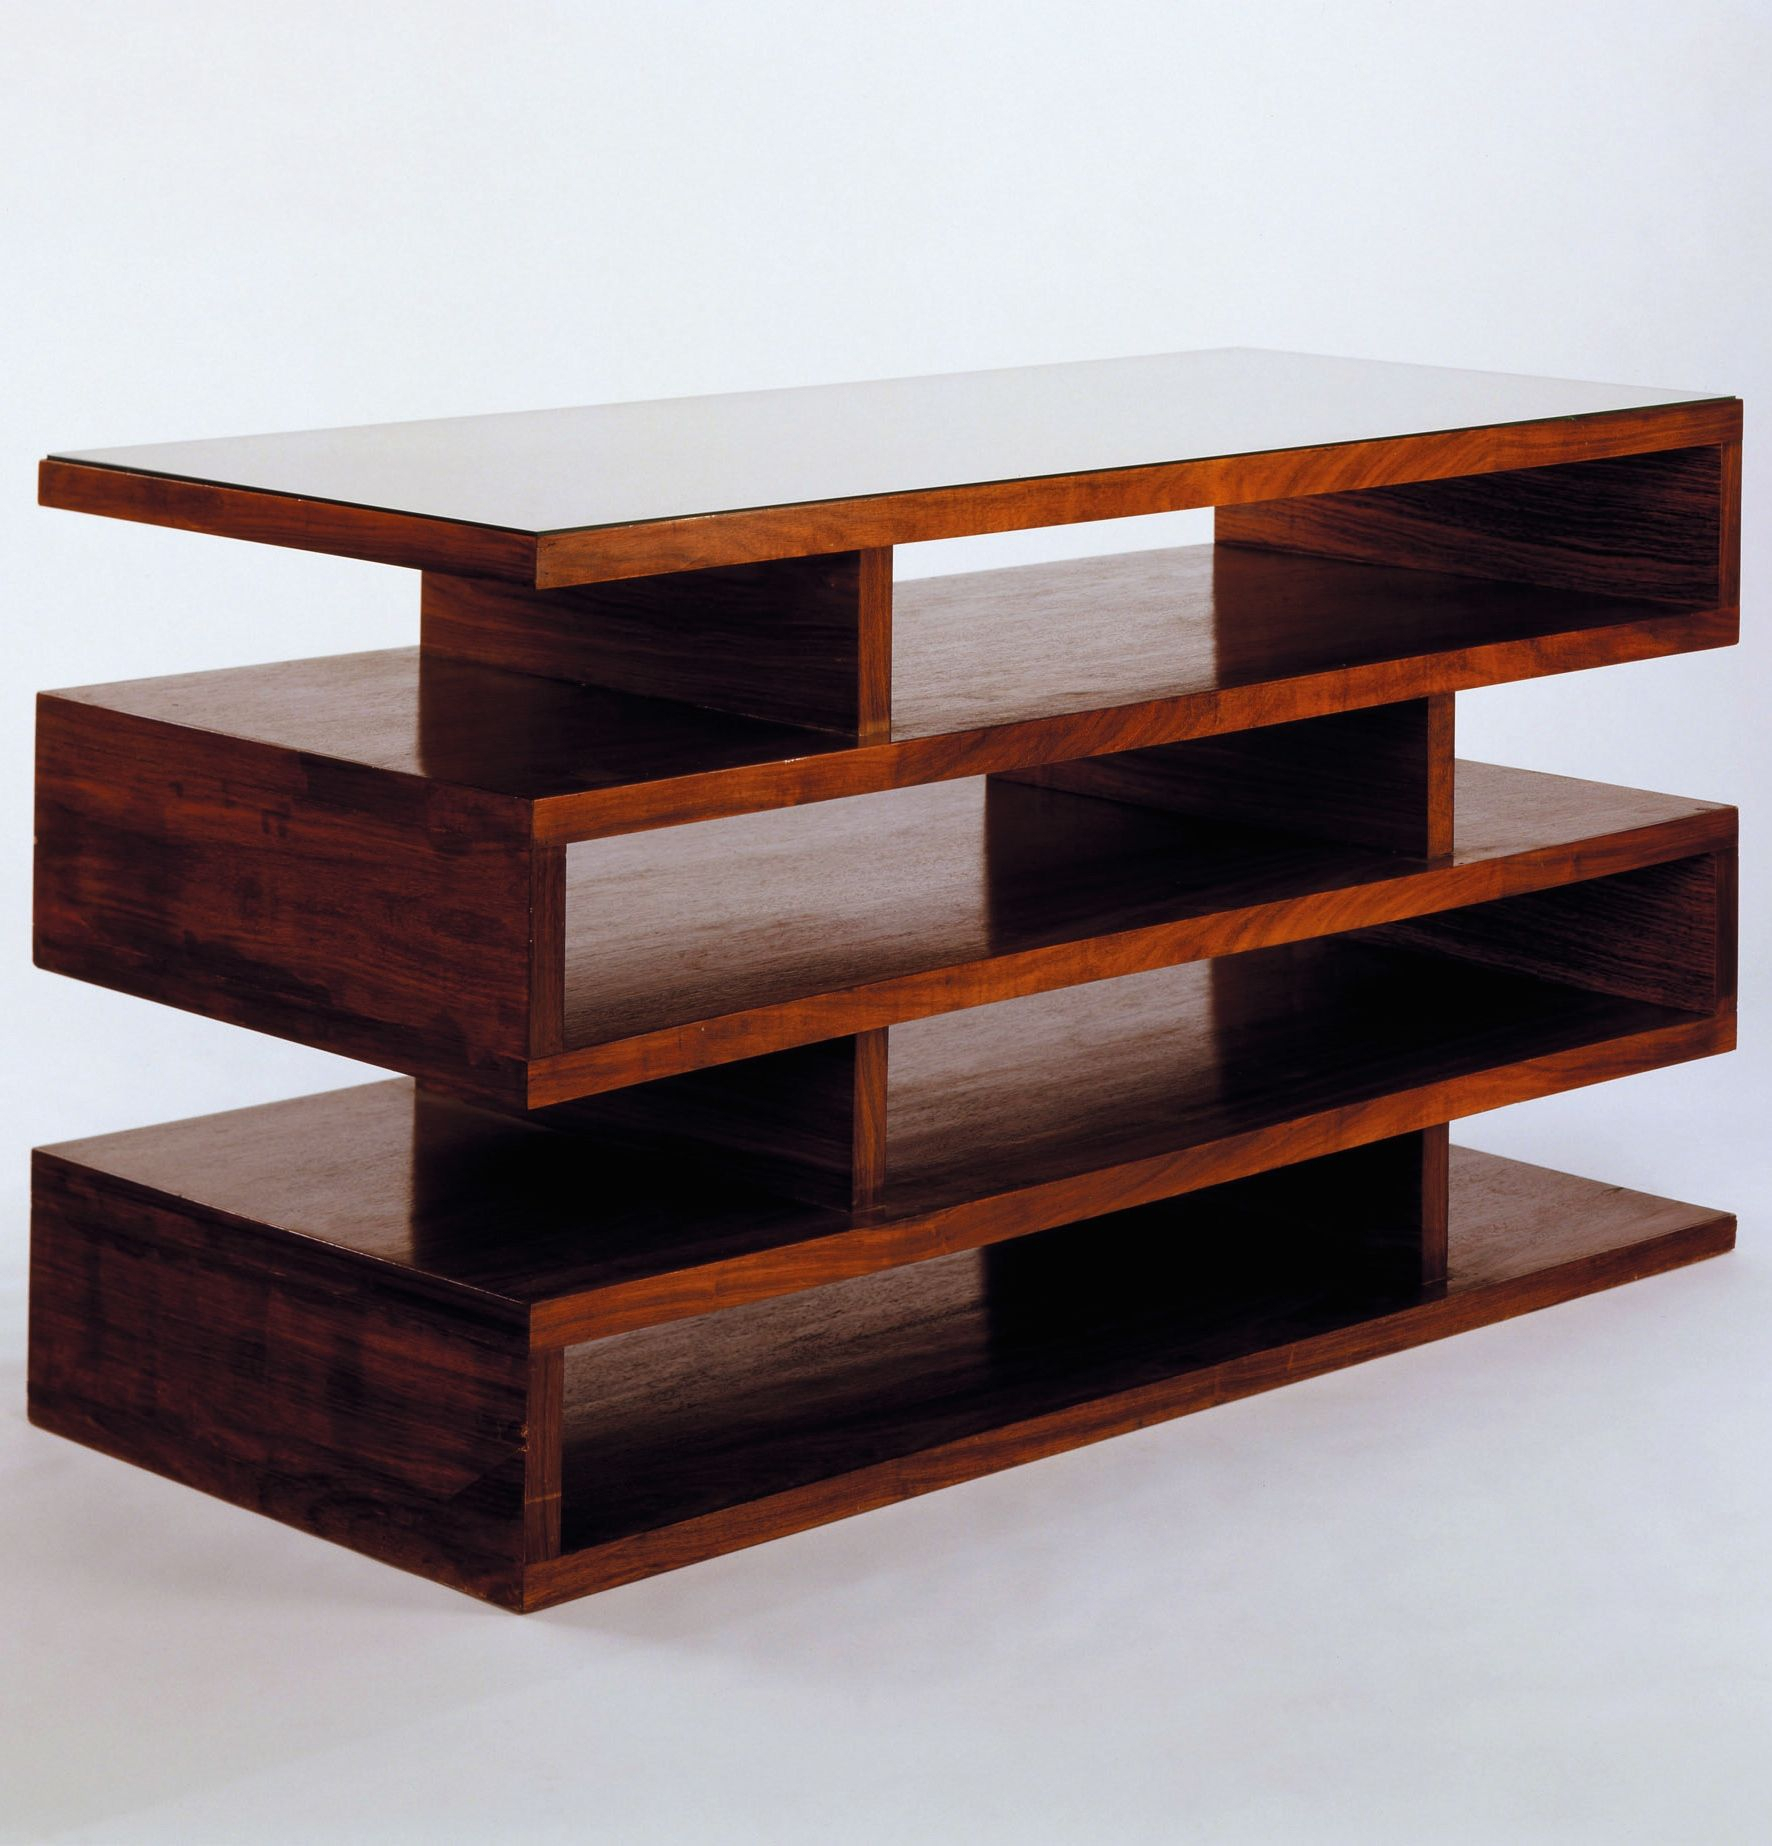 Walter Gropius; Newspaper Shelves, 1923. | Shelved | Bauhaus pertaining to Walters Media Console Tables (Image 27 of 30)